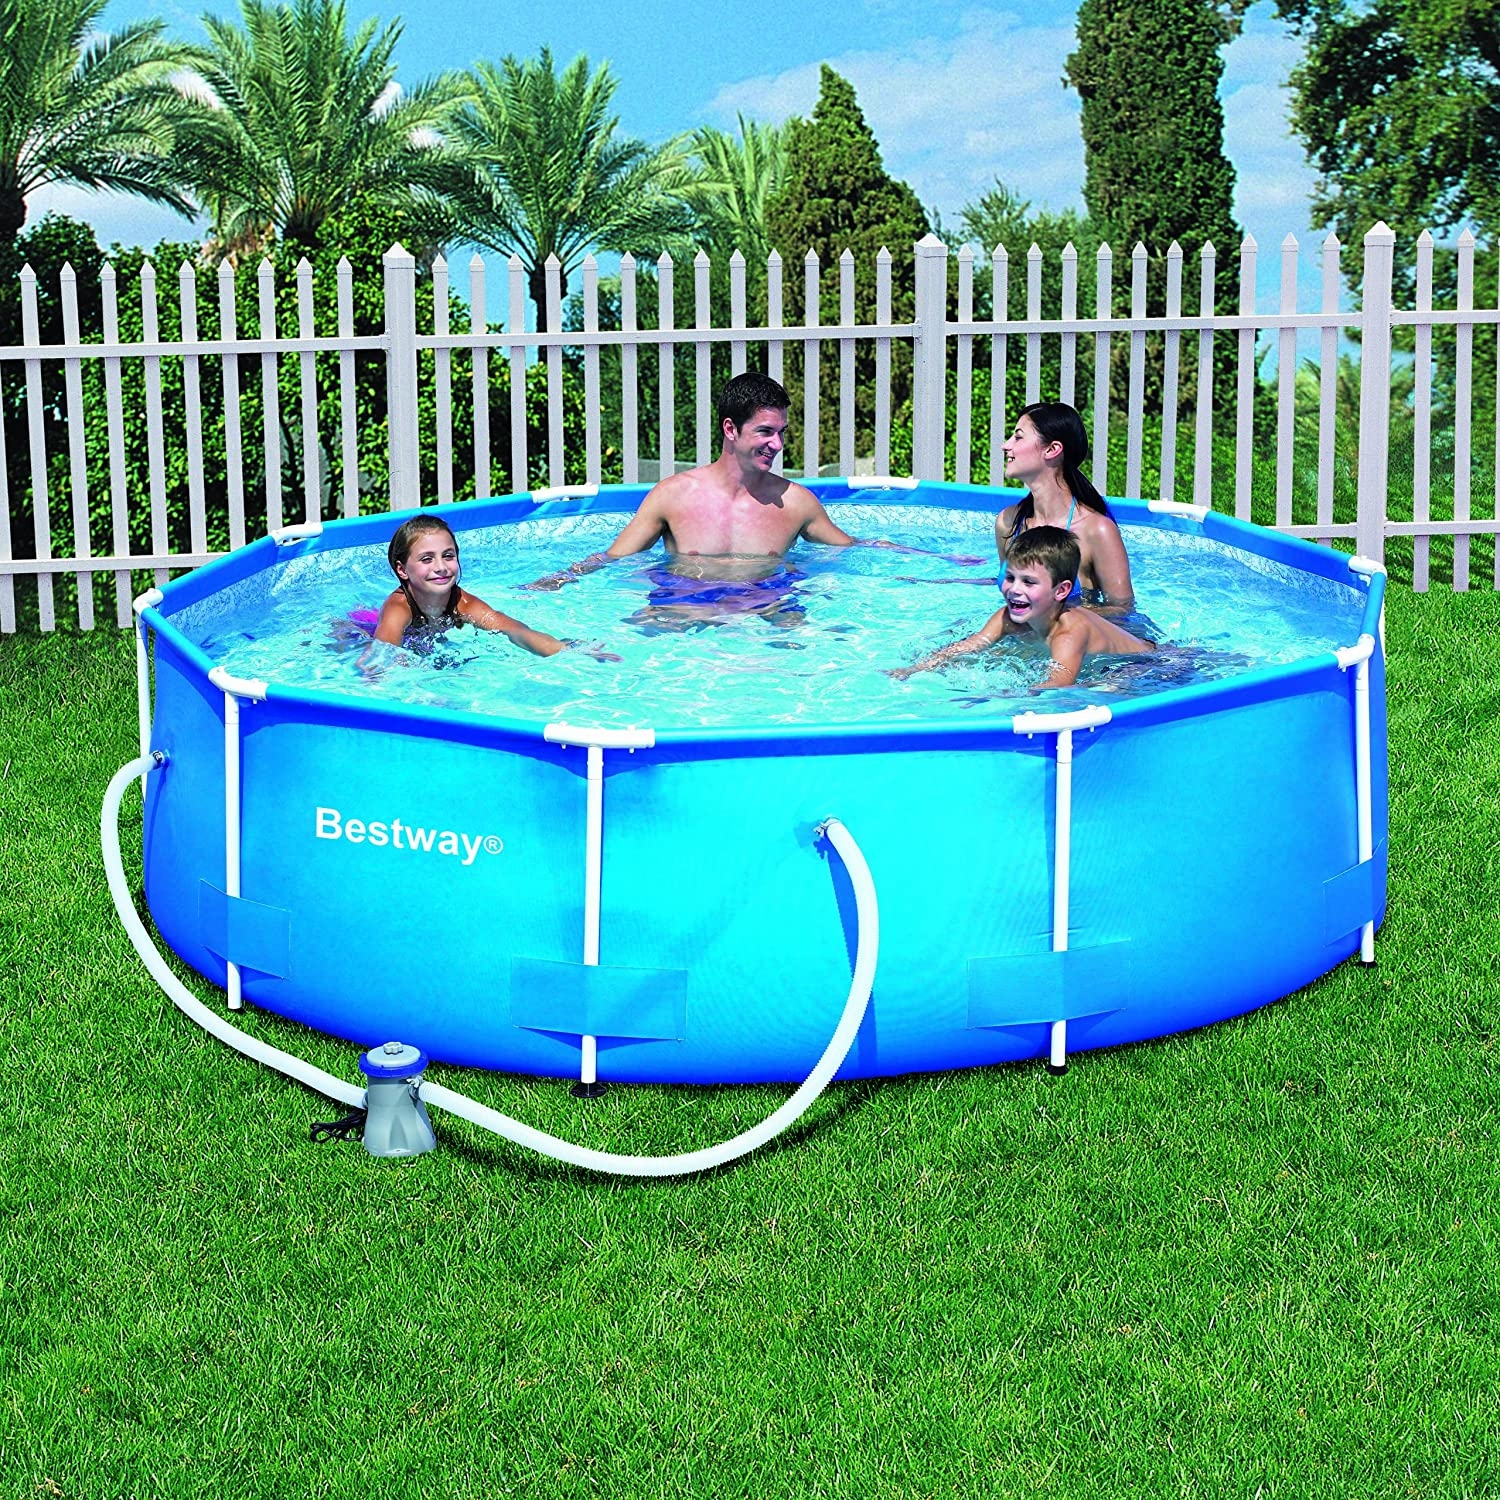 Amazon Com Bestway 10 Foot By 30 Inch Steel Pro Round Frame Pool Set Garden Outdoor